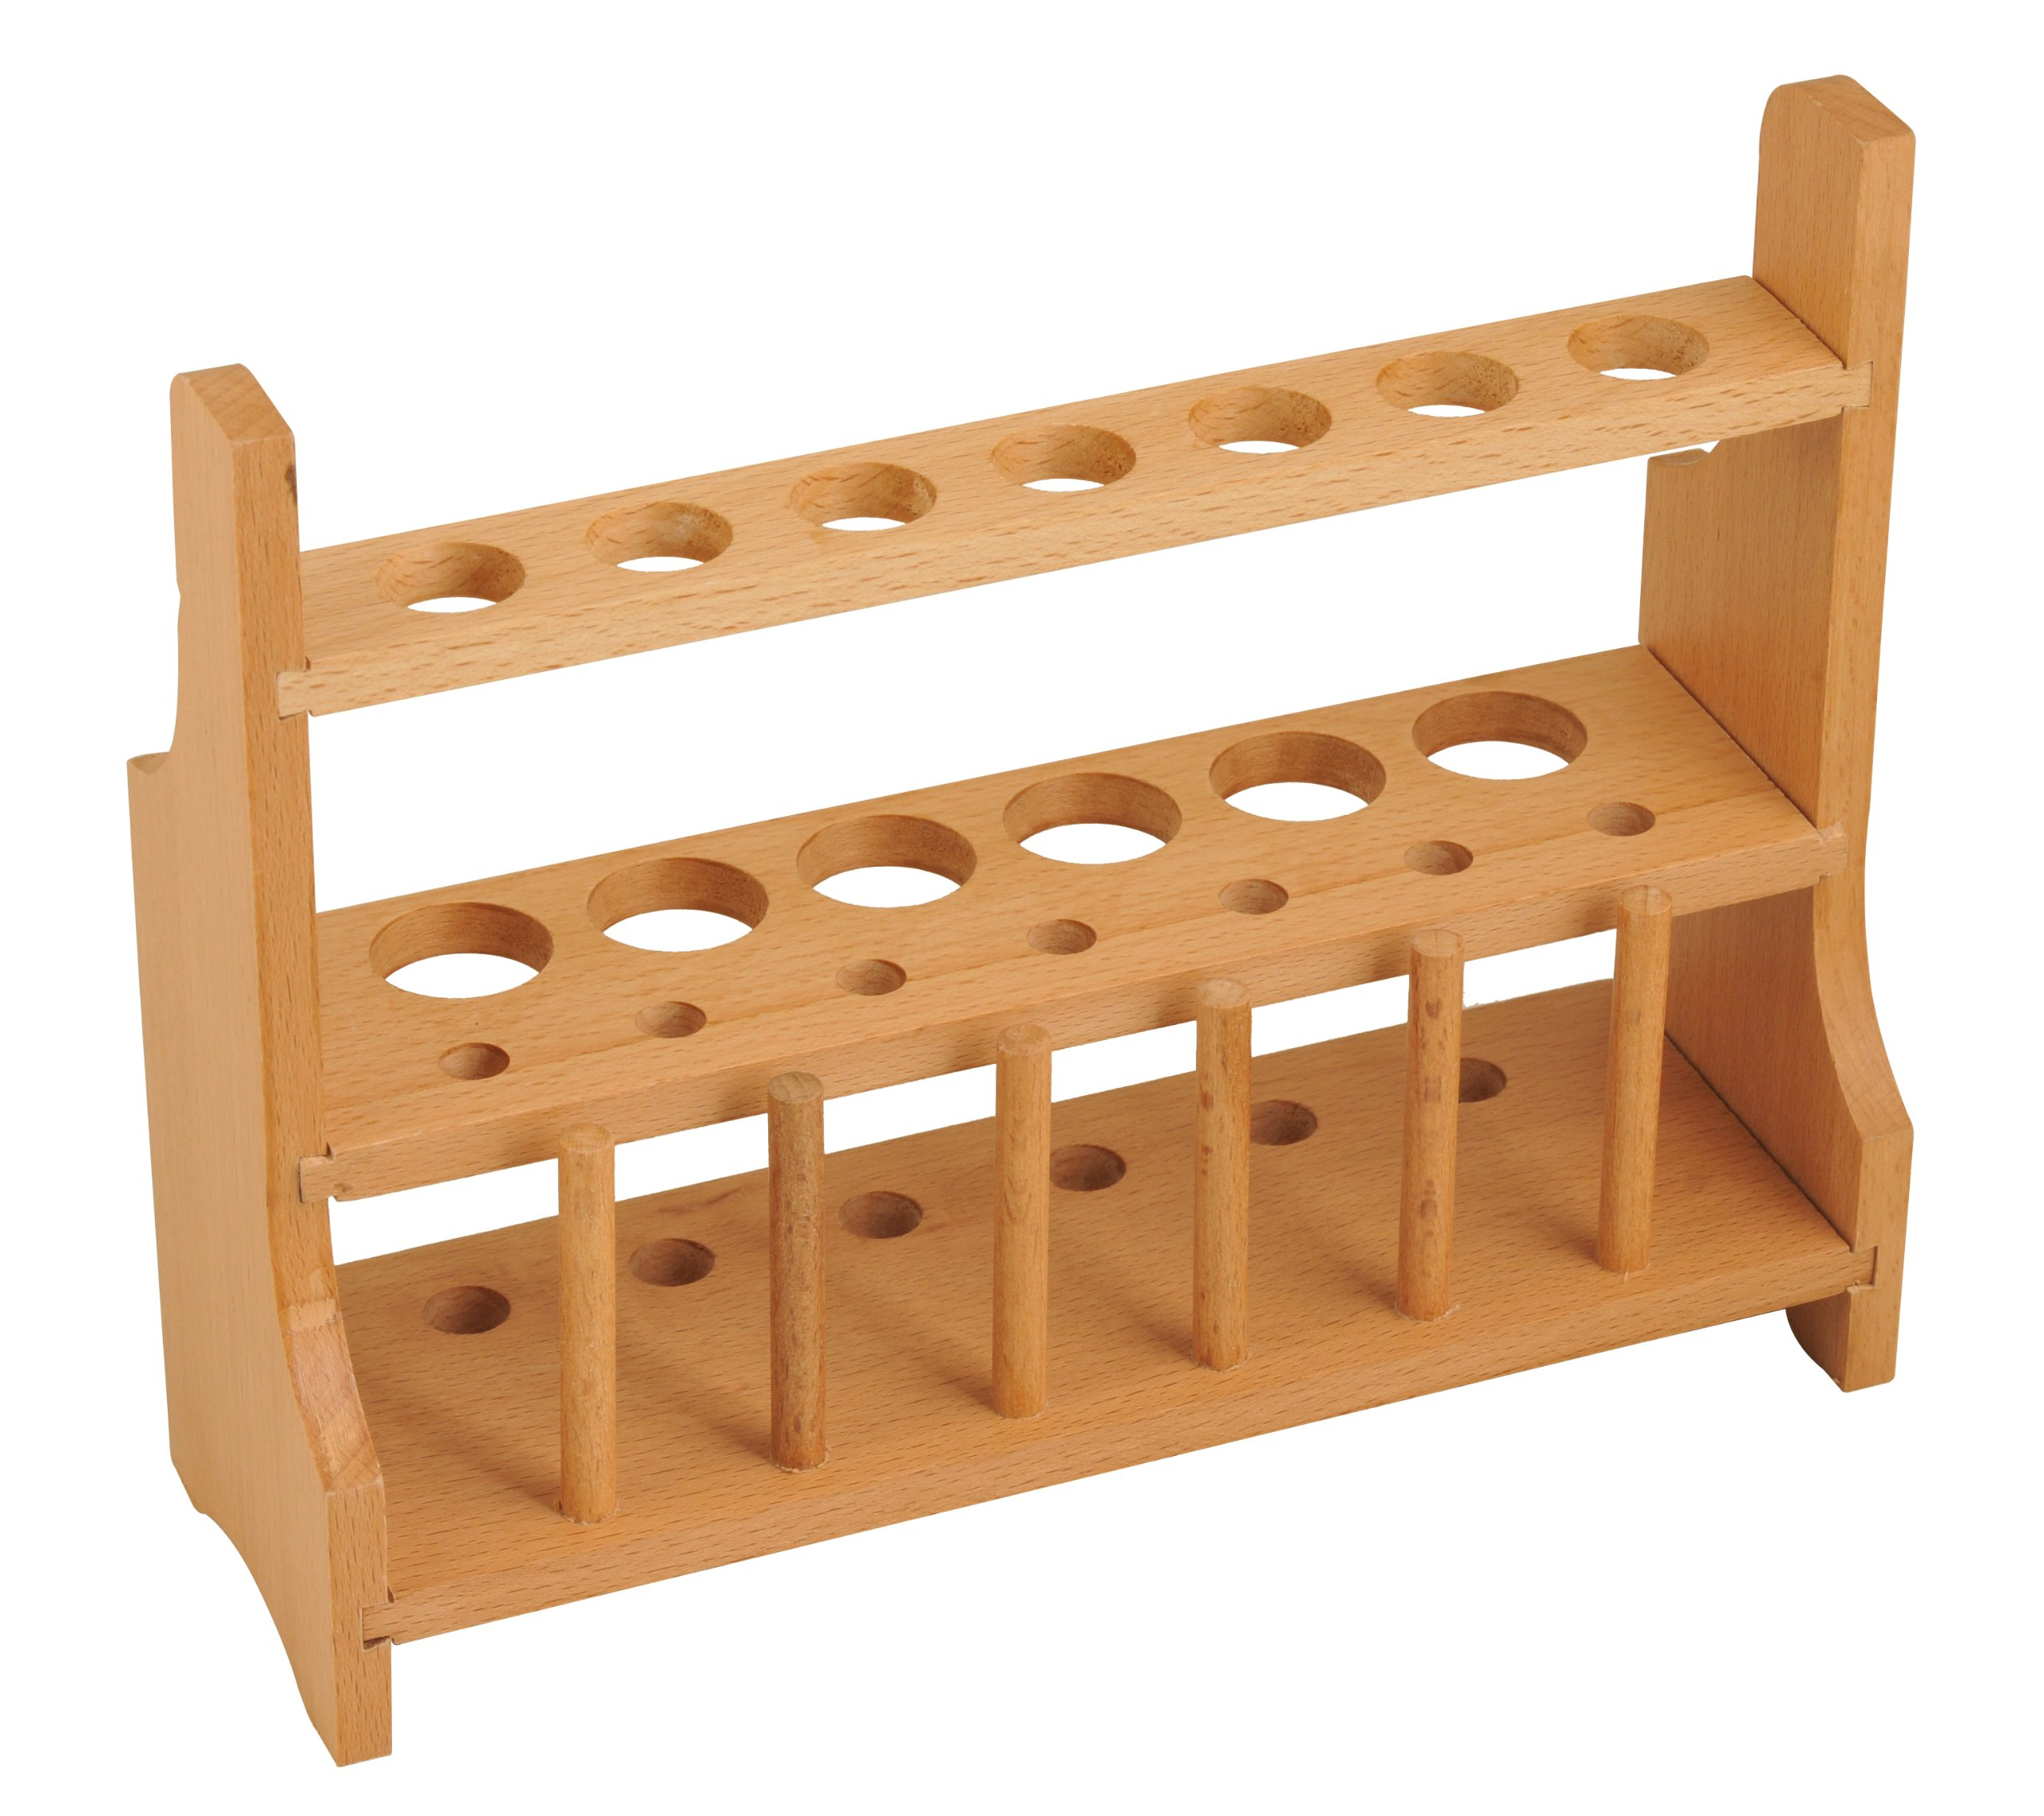 Eisco CH0003C Wood Test Tube Rack, 13 Hole, 6 Pin - 2 Shelves, 20-25mm